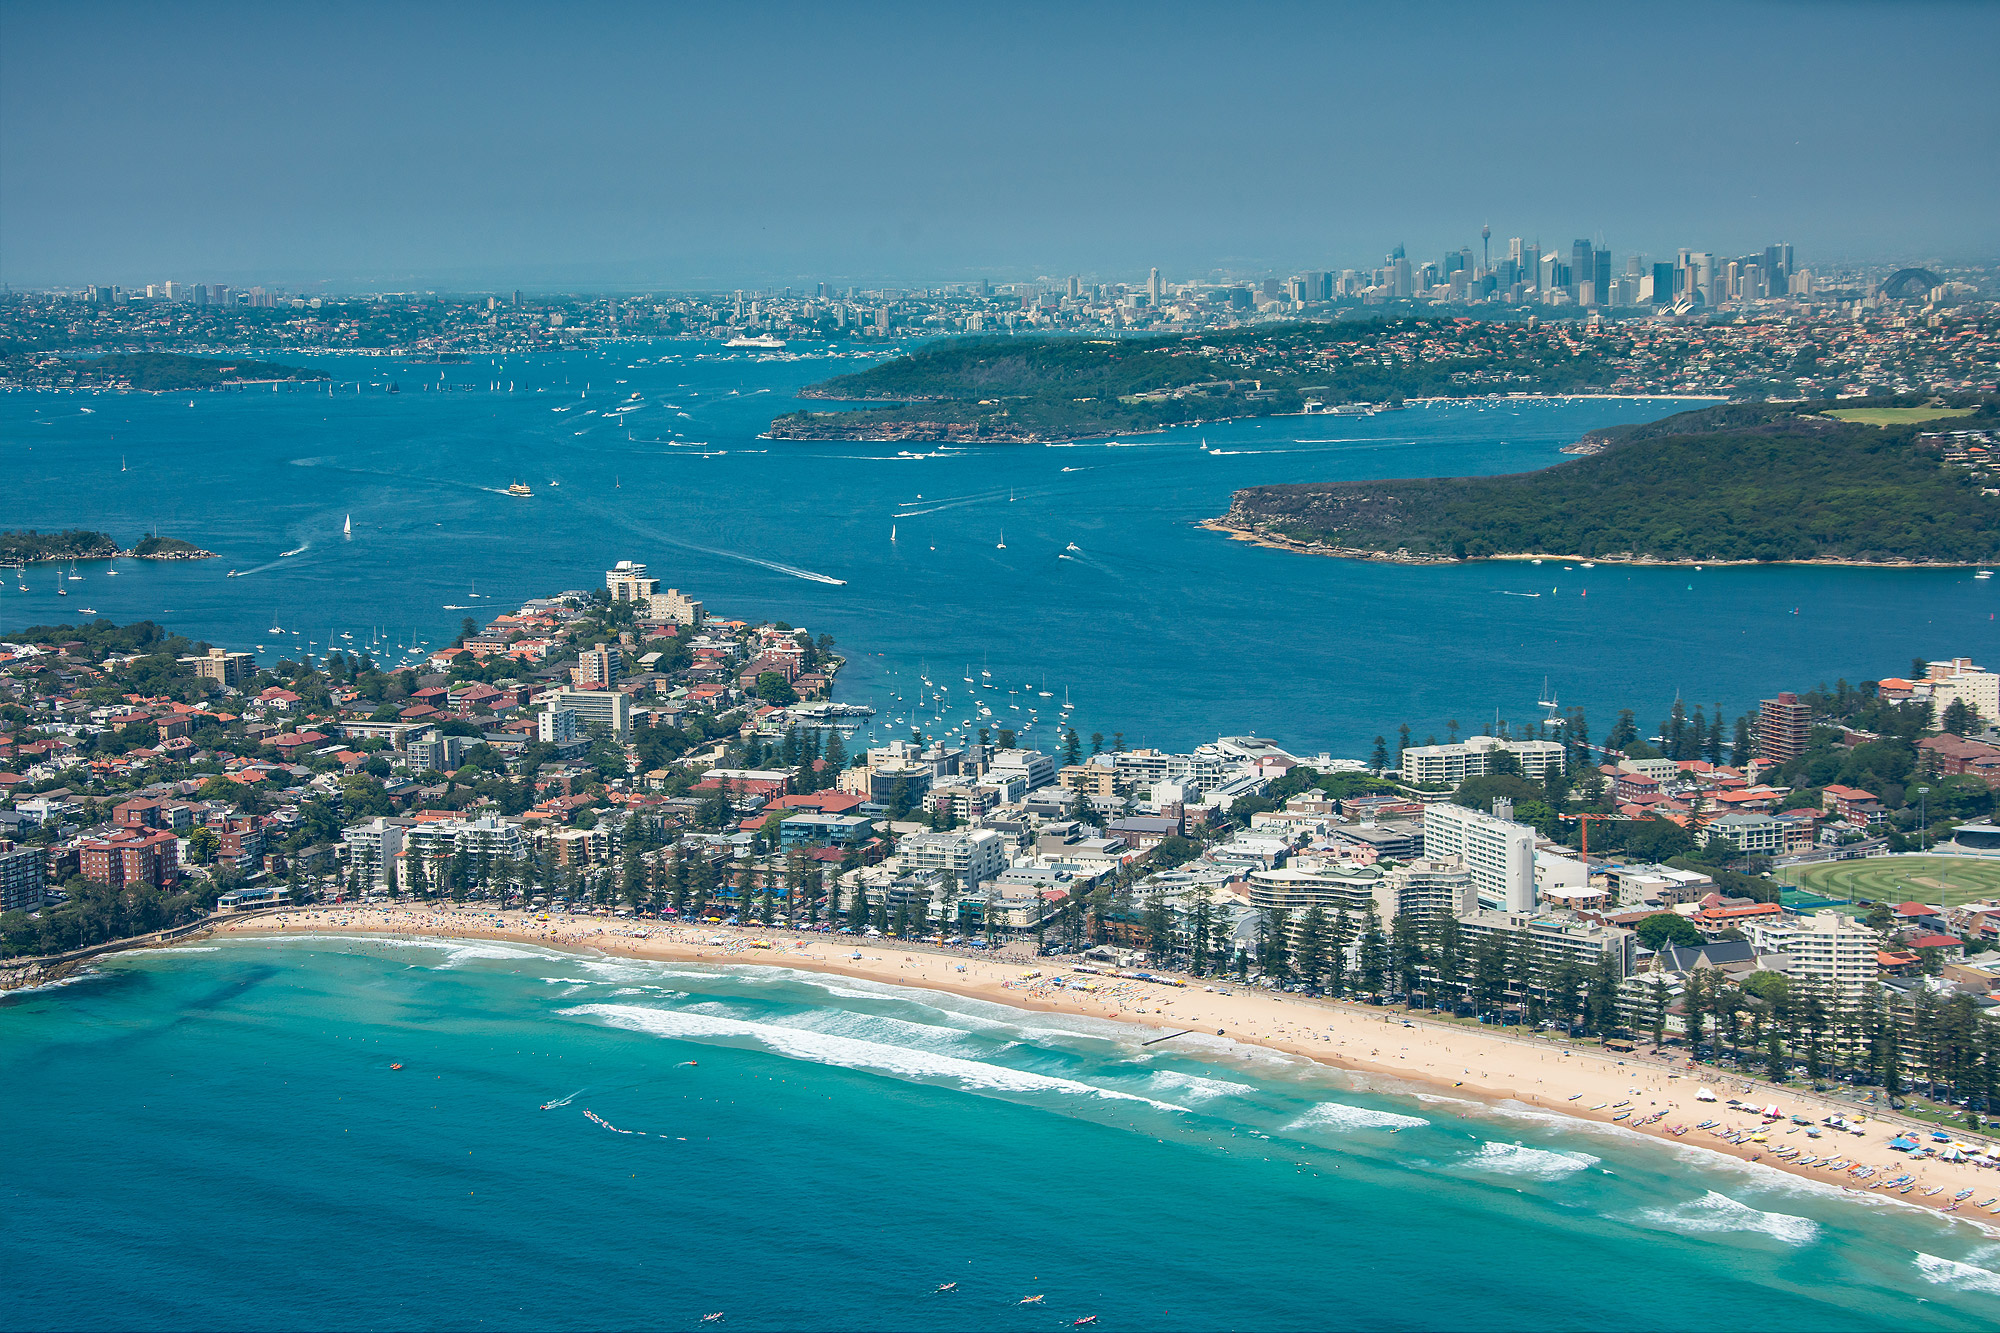 Aerial view over Manly Beach towards the city